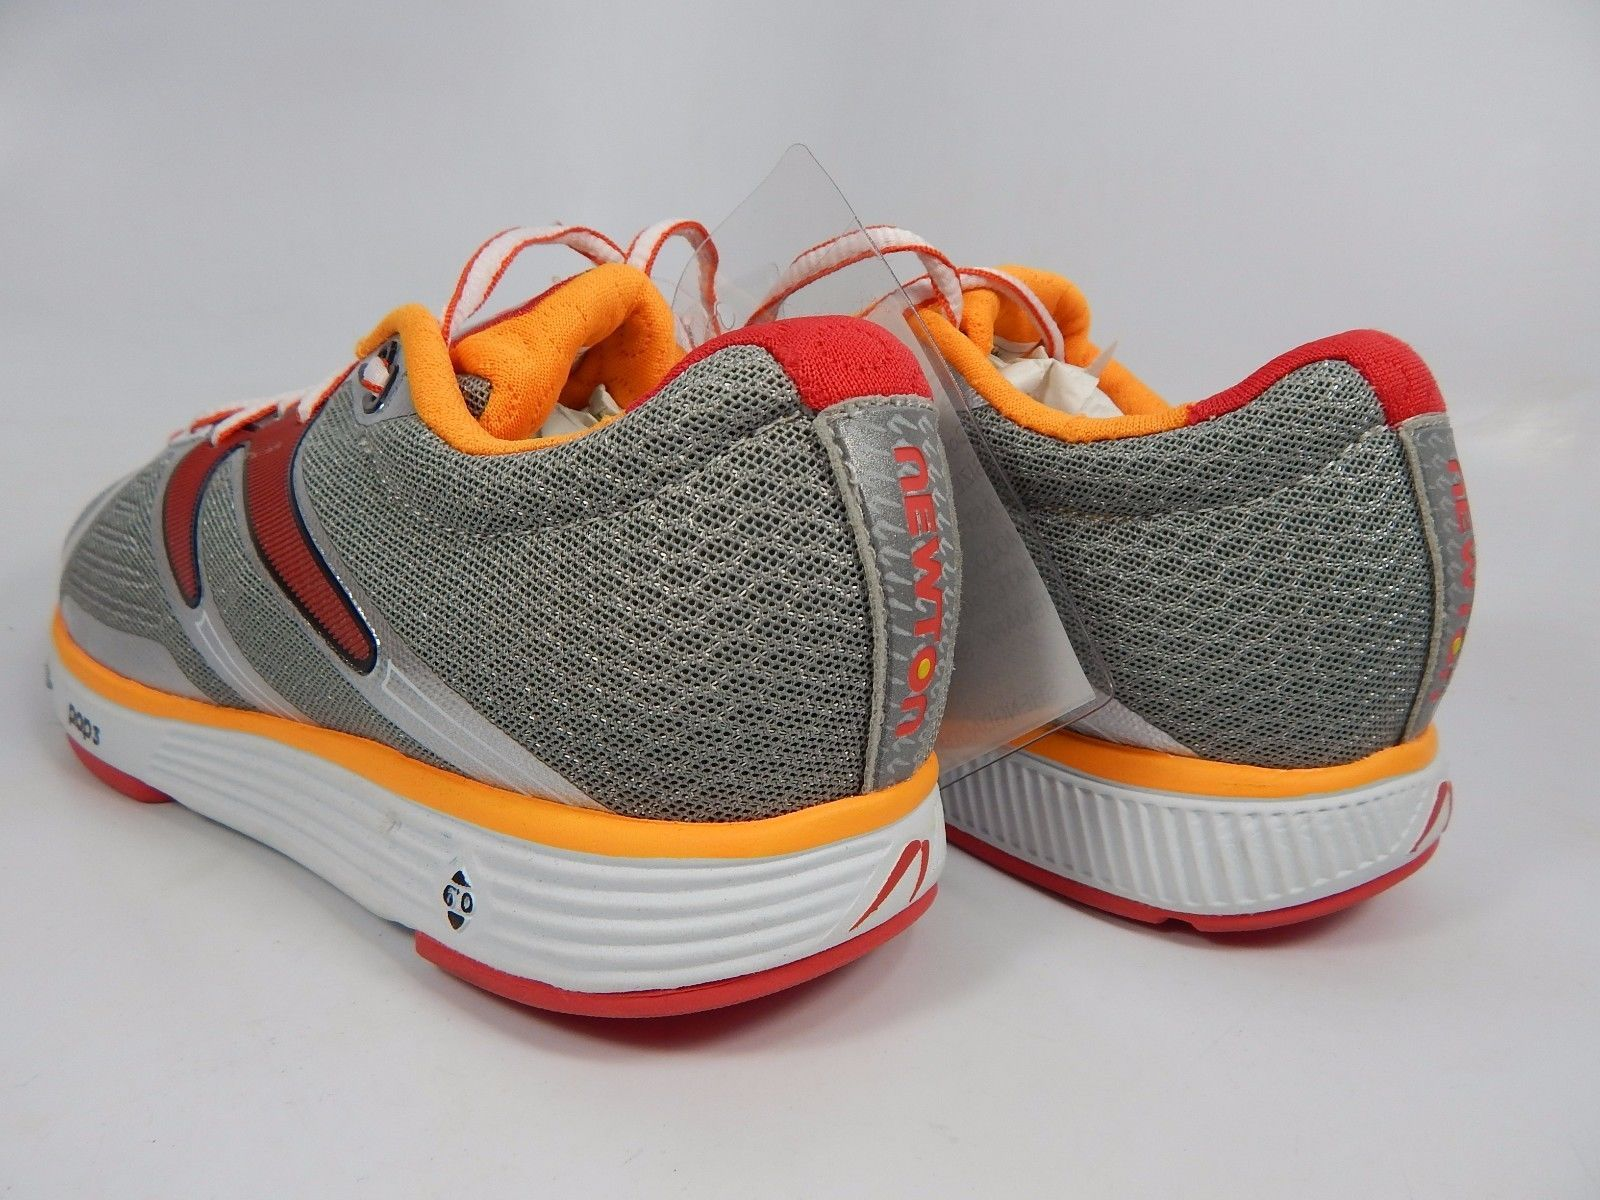 Newton OH - YA Women's Running Shoes Size US 7 M (B) EU 38 Silver Red Orange